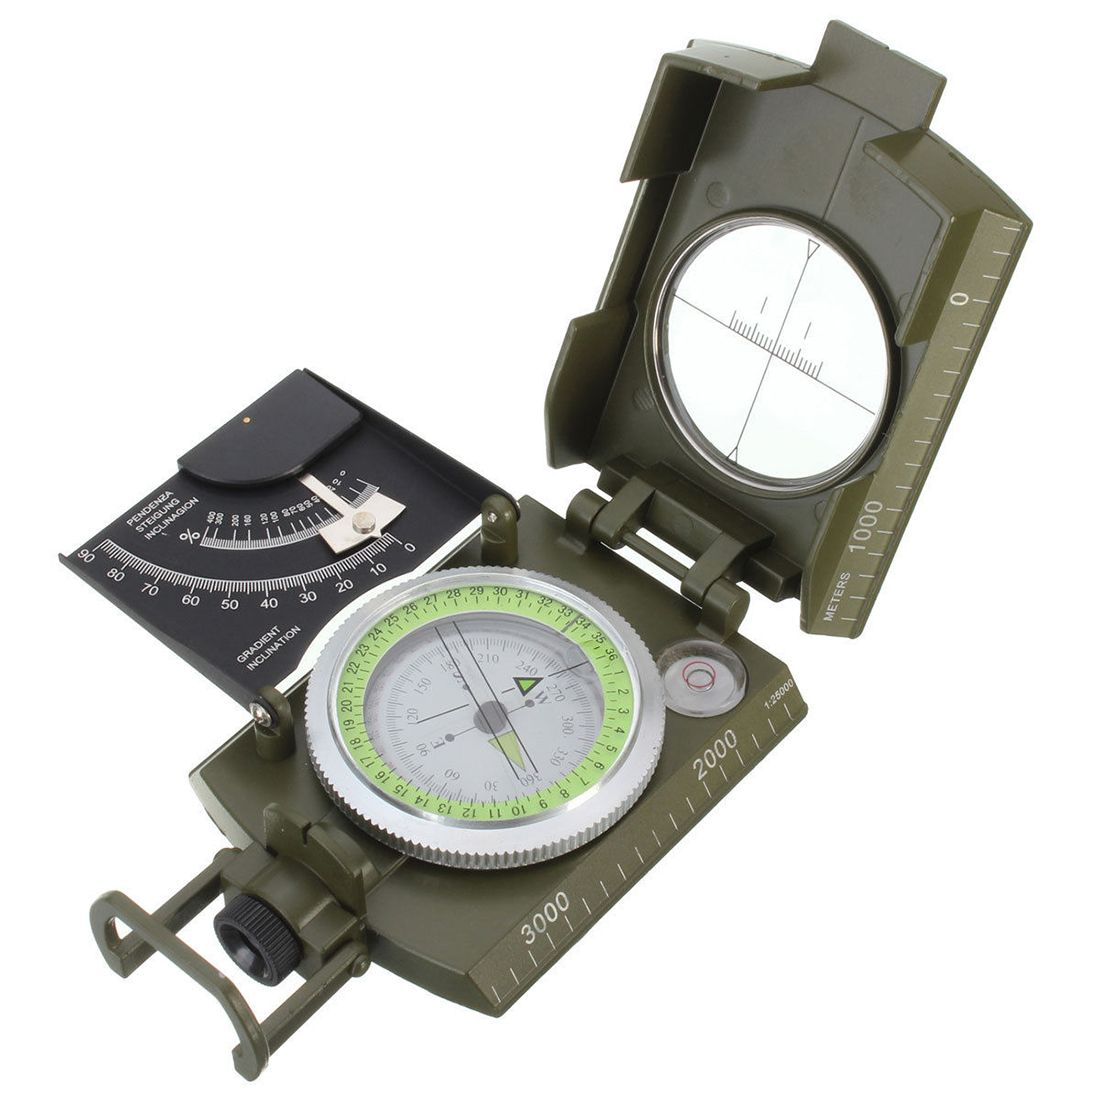 2018 New Professional Military Army Metal Sighting <font><b>Compass</b></font> clinometer Camping